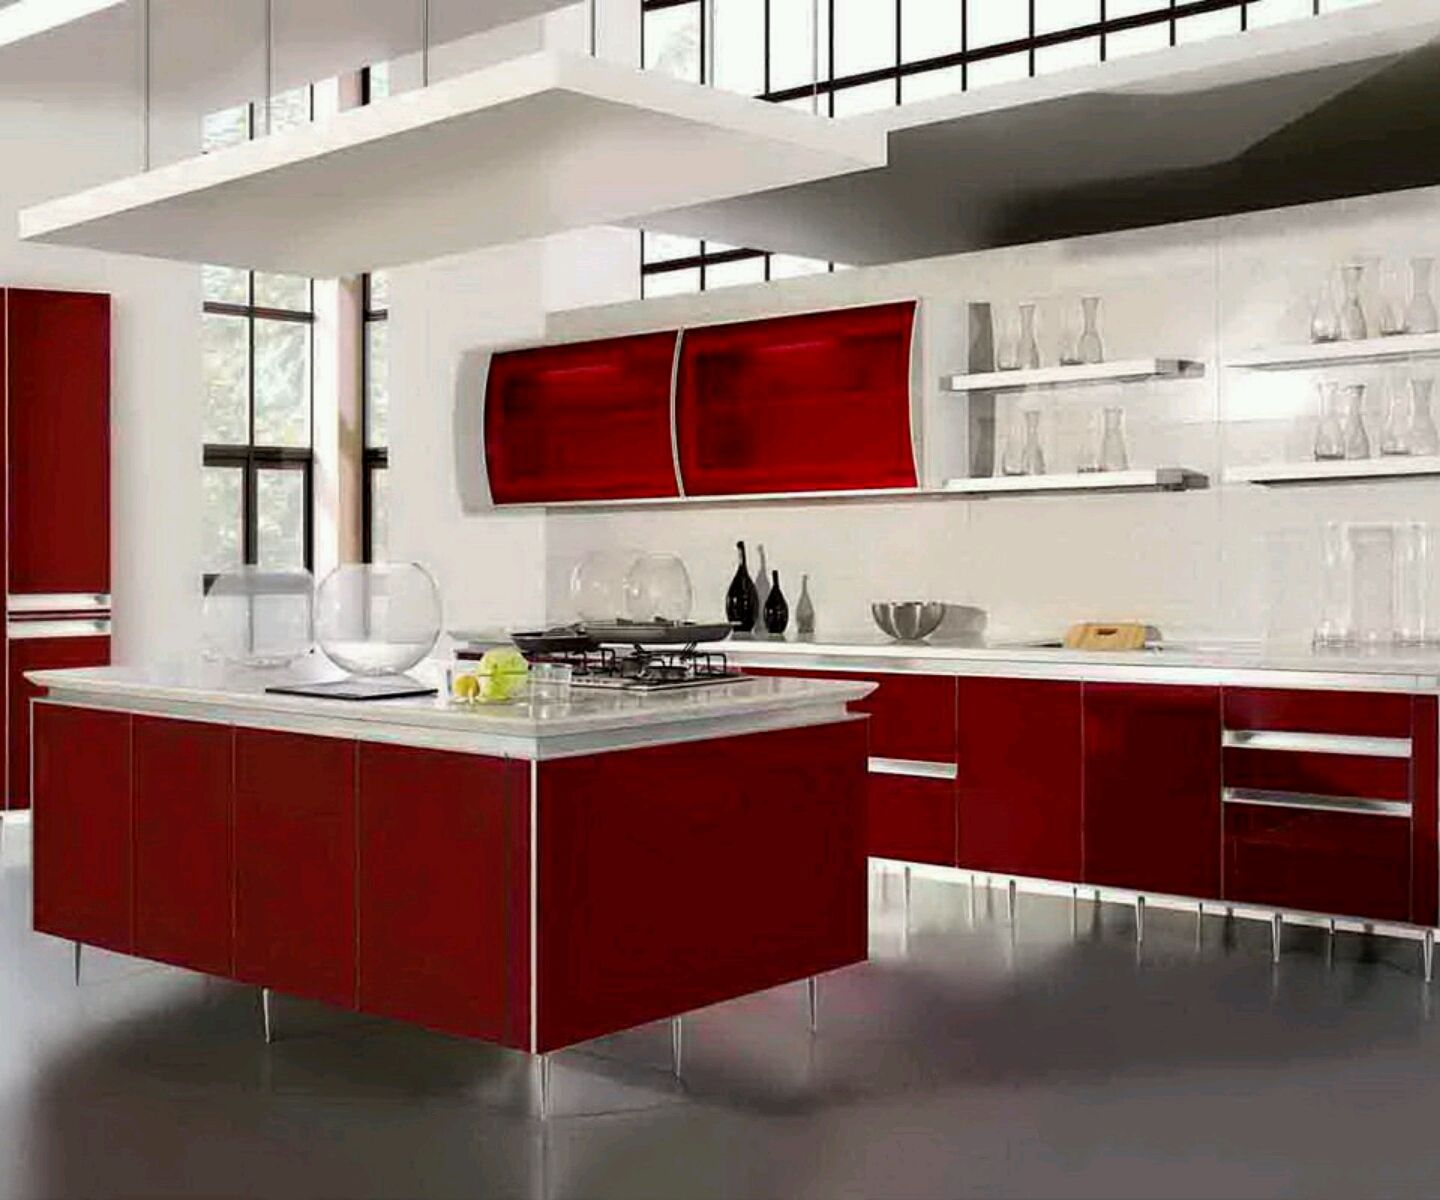 interior design for kitchen - 1000+ images about Kitchens on Pinterest Modern kitchen designs ...